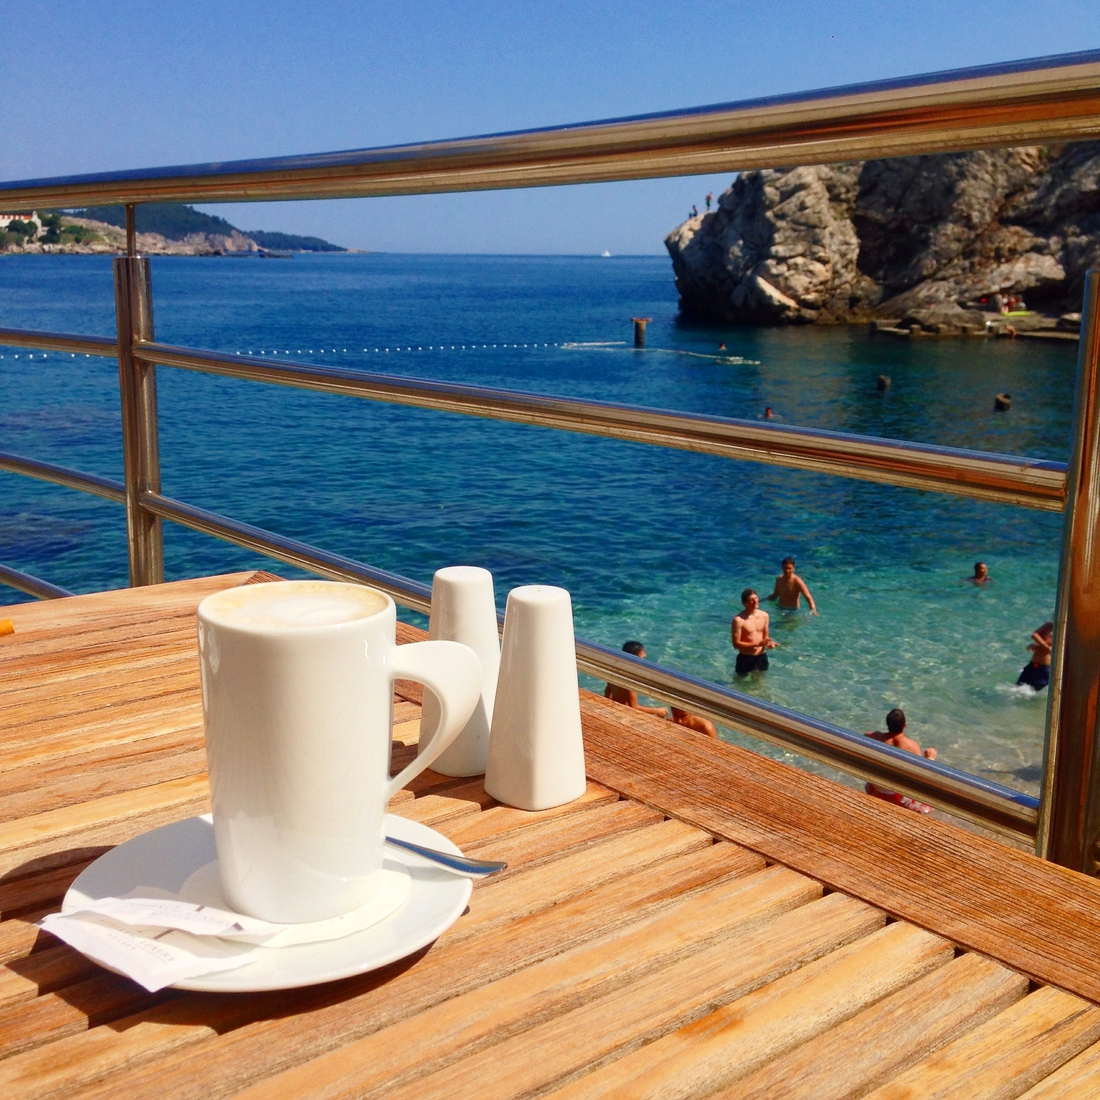 People in Dubrovnik eat and drink coffee outdoors - go dubrovnik